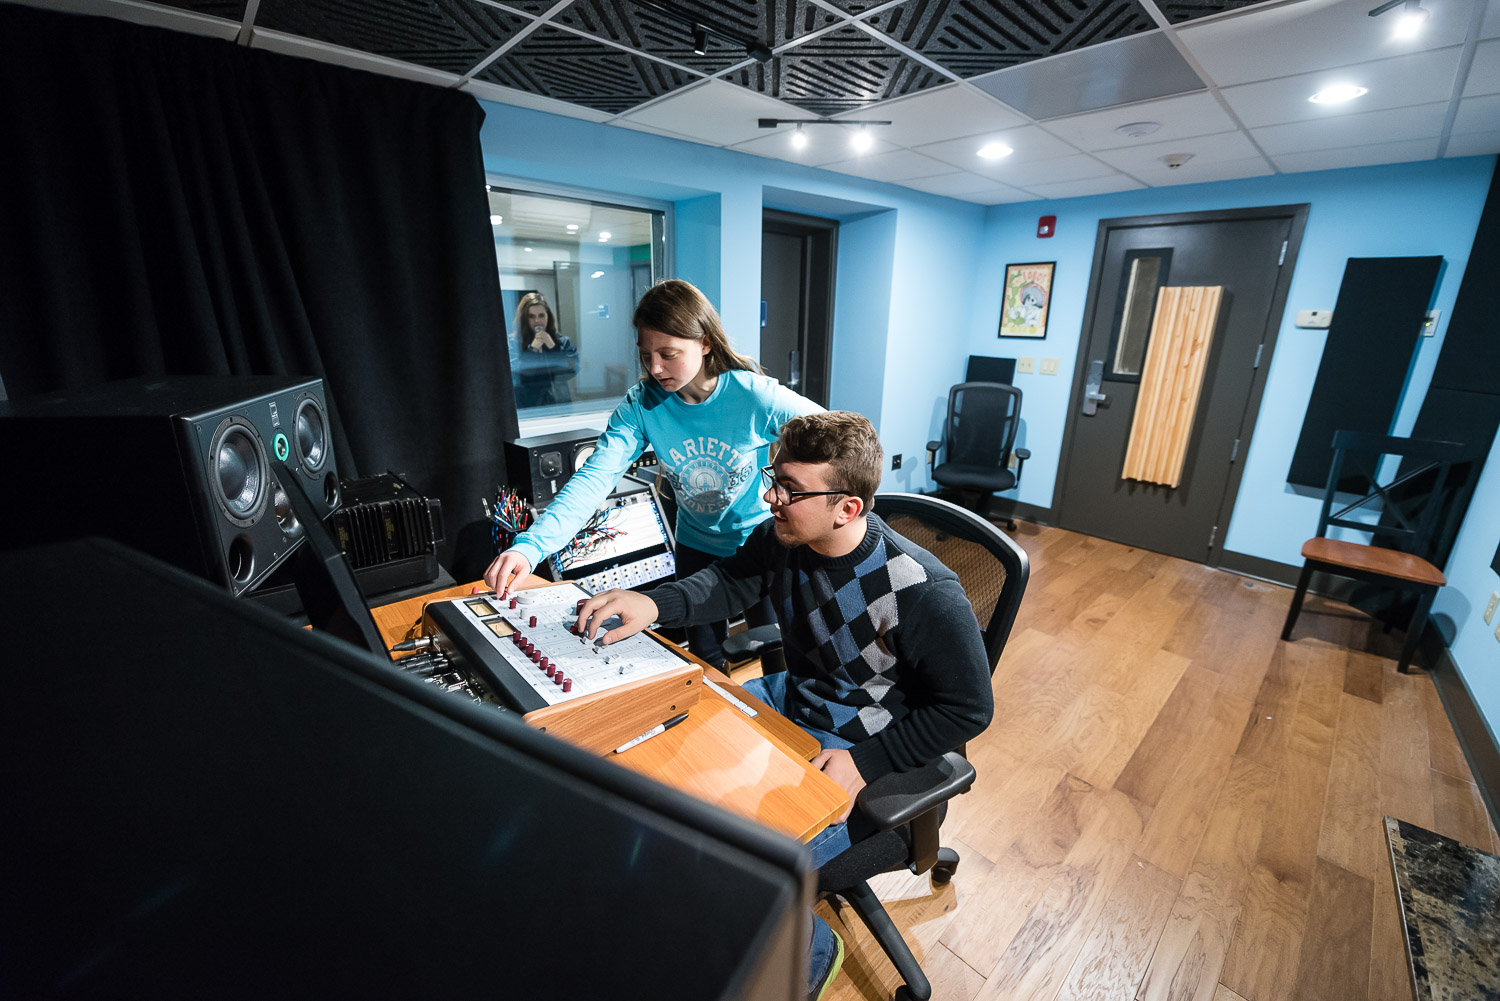 Two Marietta College students in the new recording studio